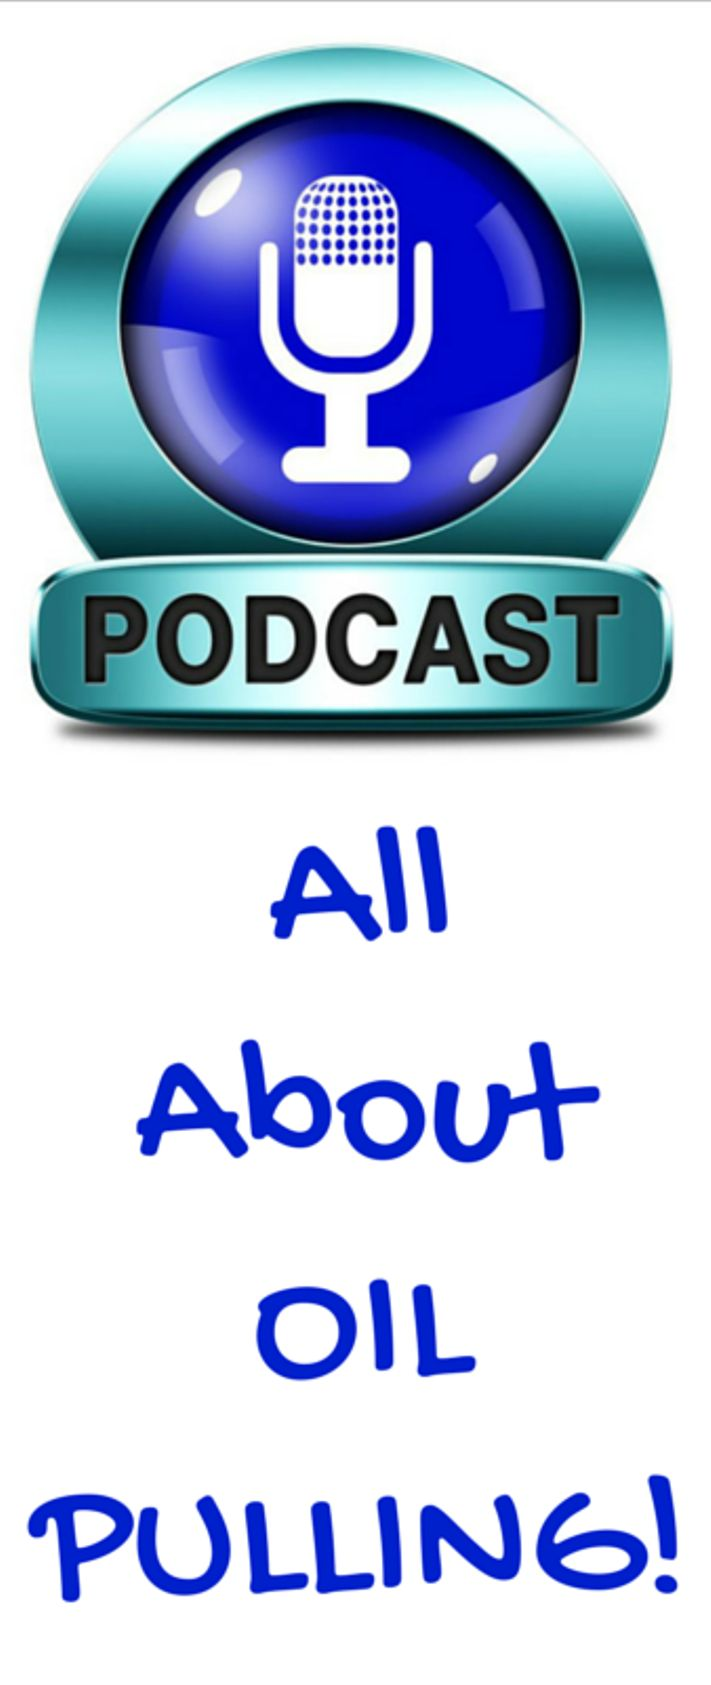 A Short Podcast on eHealth Radio Network About Oil Pulling! Learn Why it is Important for Wellness!   http://ehealthradio.podbean.com/e/what-is-oil-pulling-and-why-should-you-start-immediately-for-your-wellness